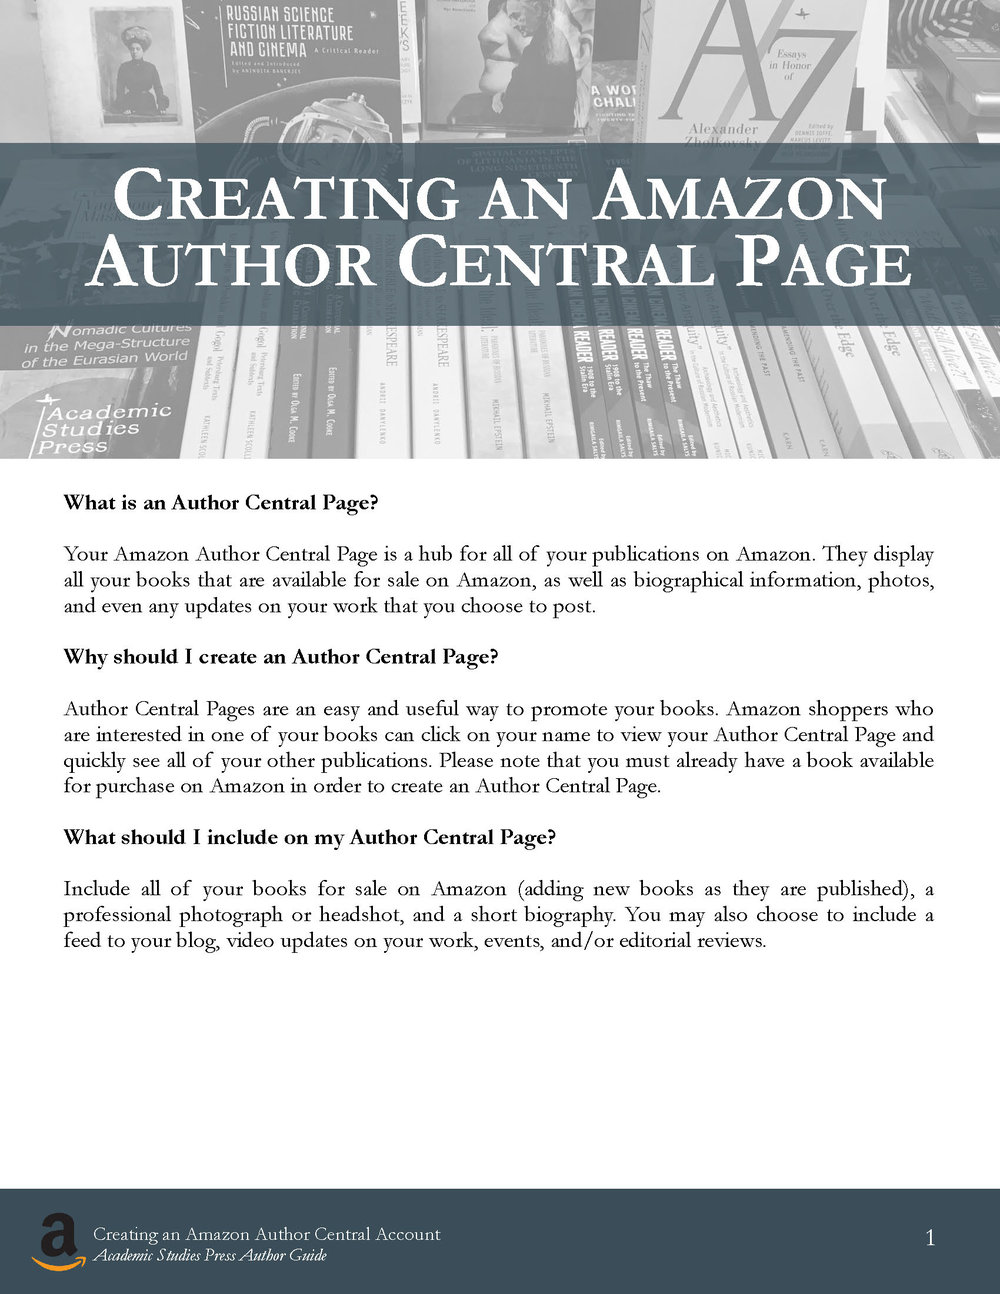 Author Guide: Creating an Amazon Author Central Page